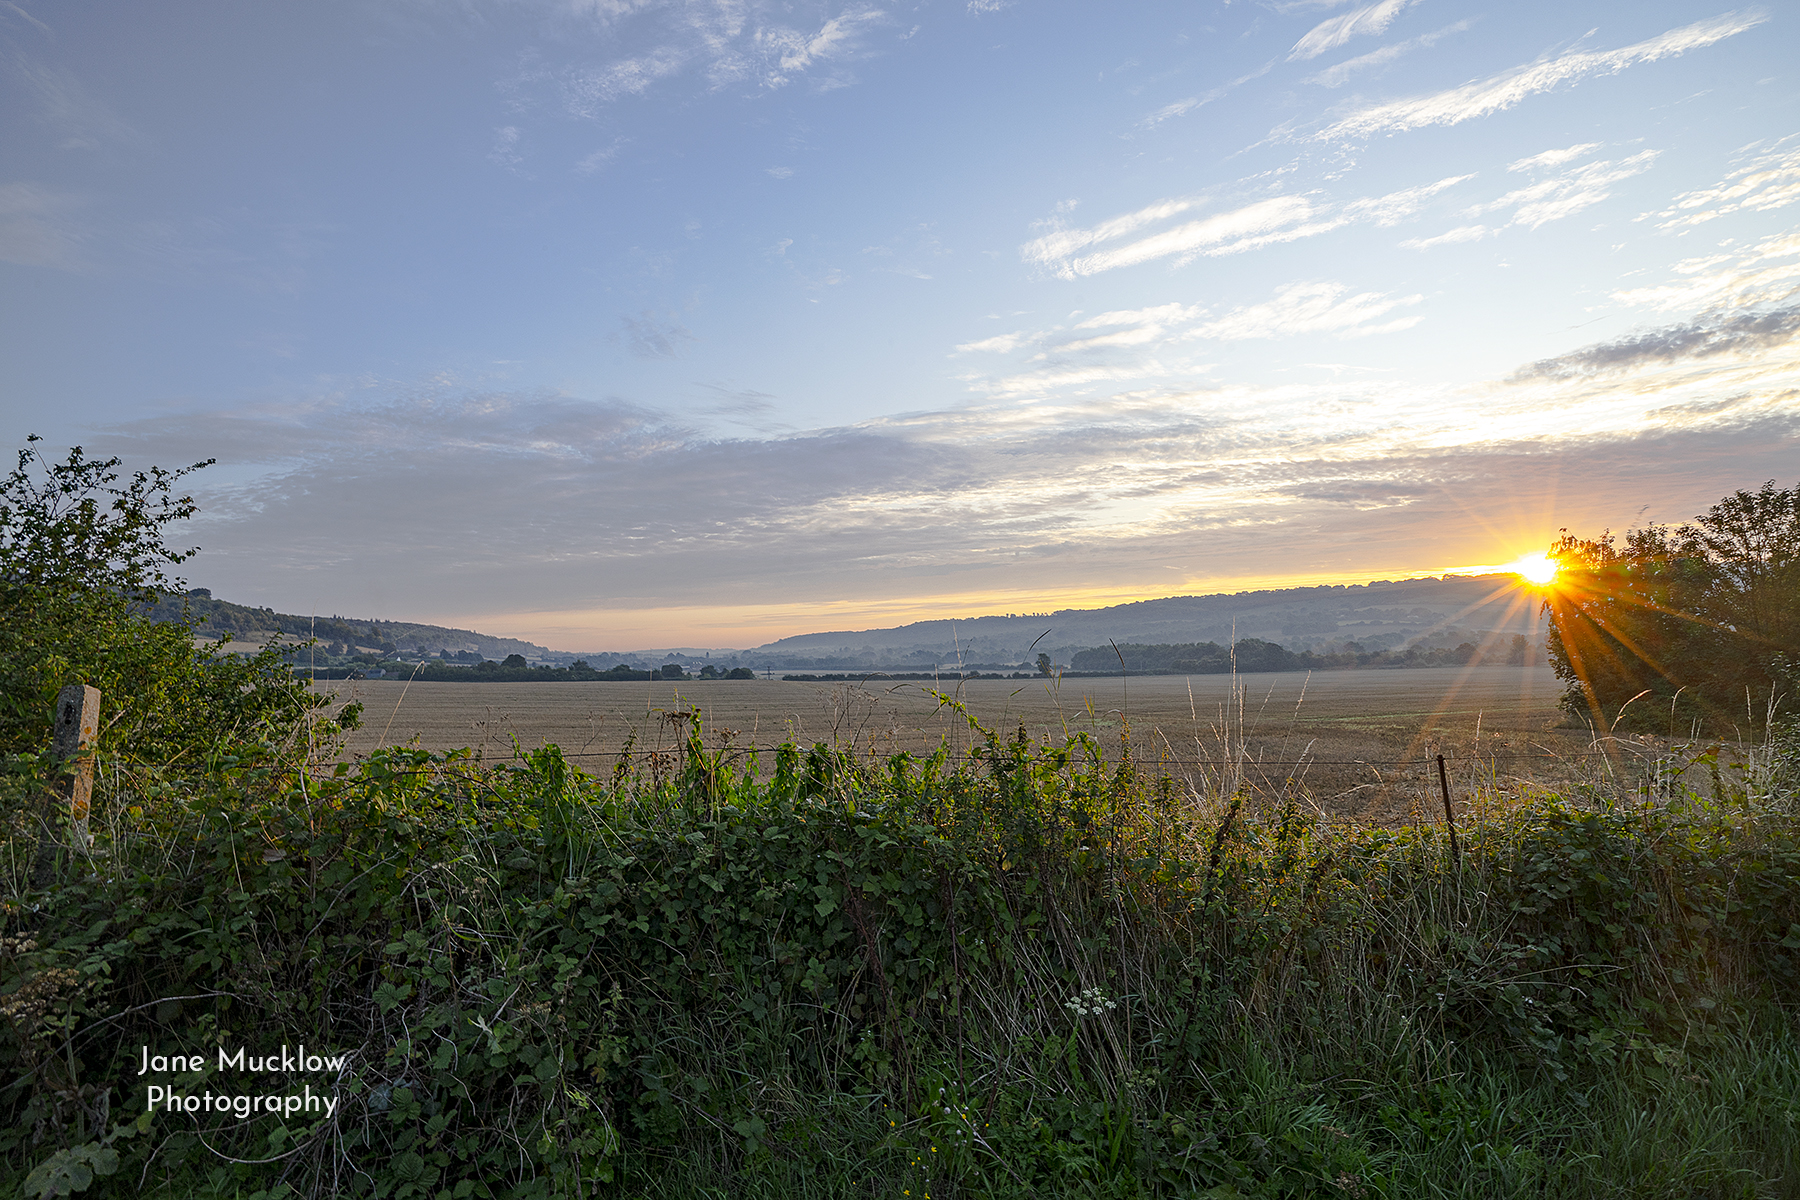 Photograph by Jane Mucklow of the sunrise over Otford Mount, view towards Shoreham